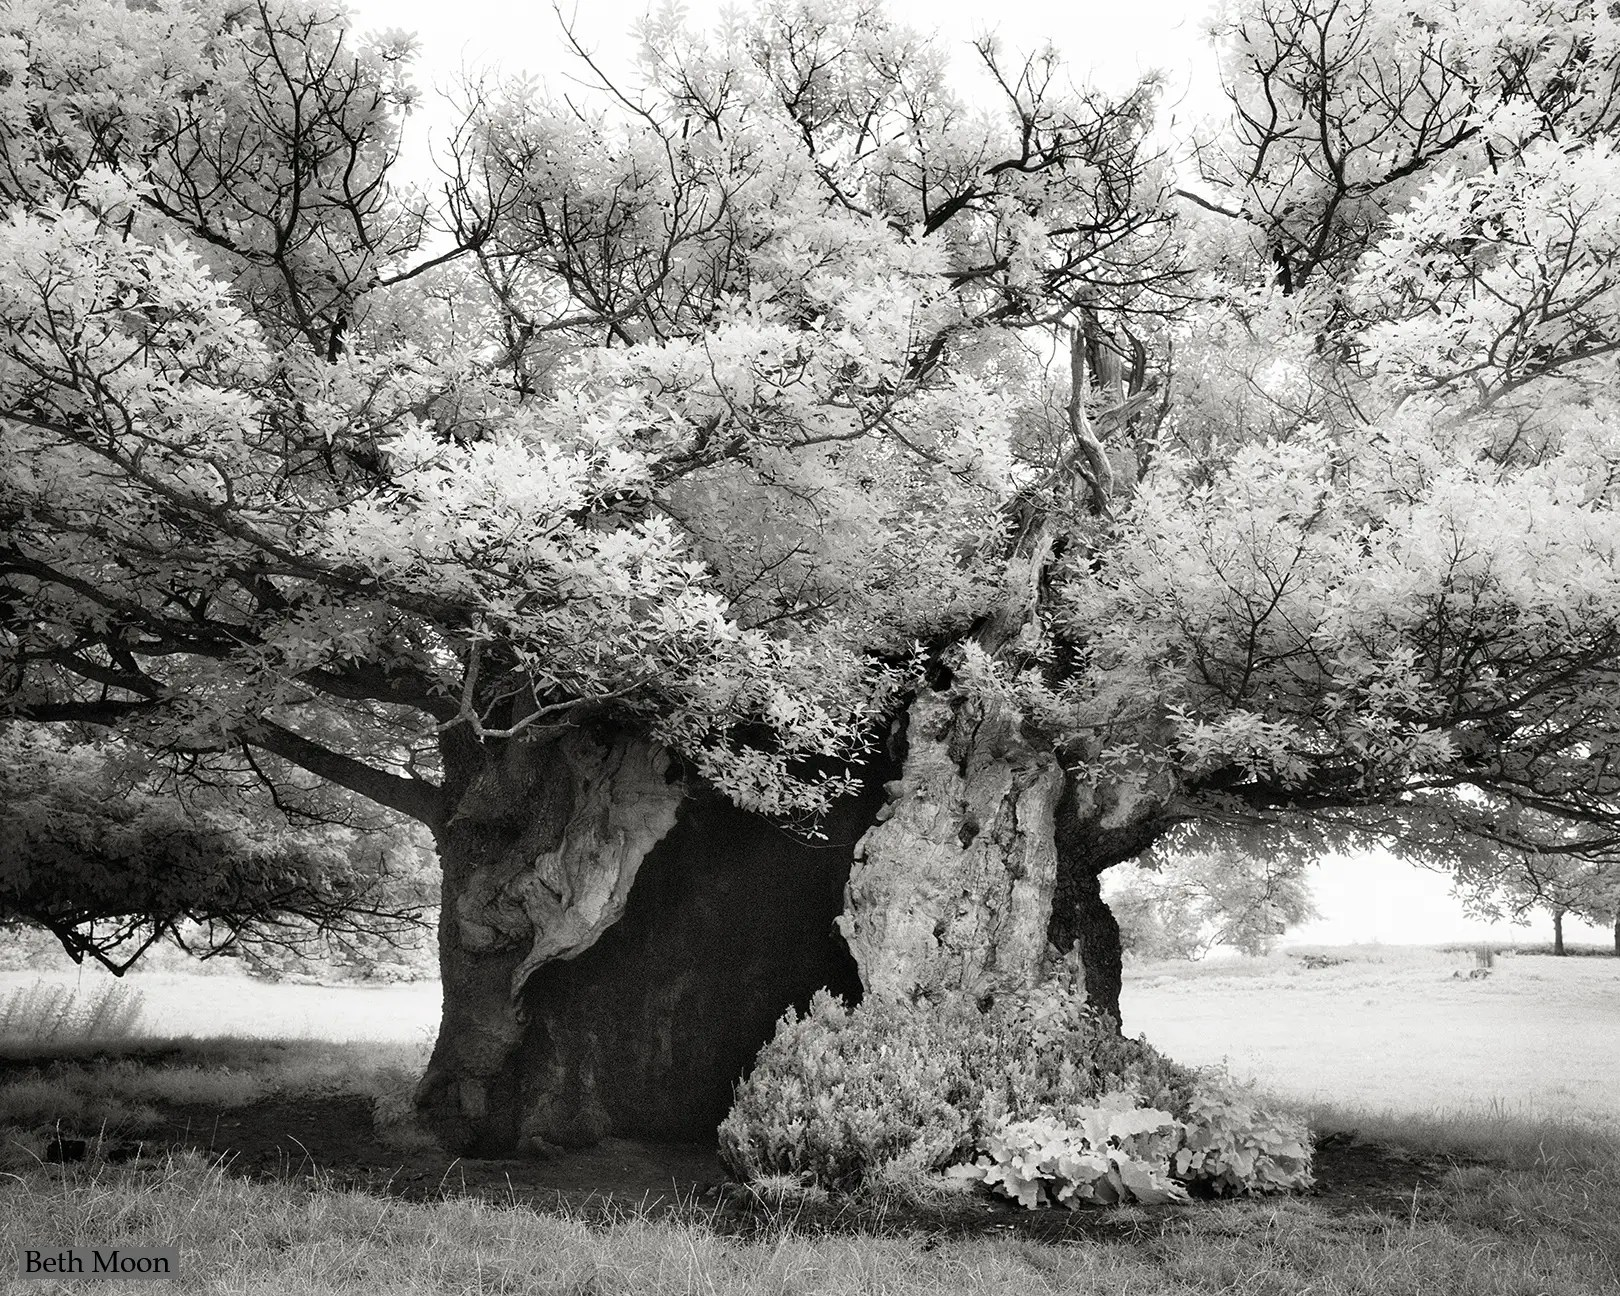 The Queen Elizabeth Oak is an ancient tree growing near Cowdray Park in England. It is estimated to have begun growing in the 11th or 12th century and has a girth of 52 feet at its widest point. It is thought to have got its name after a visit from the Queen to Viscount Cowdray's estate in 1591.